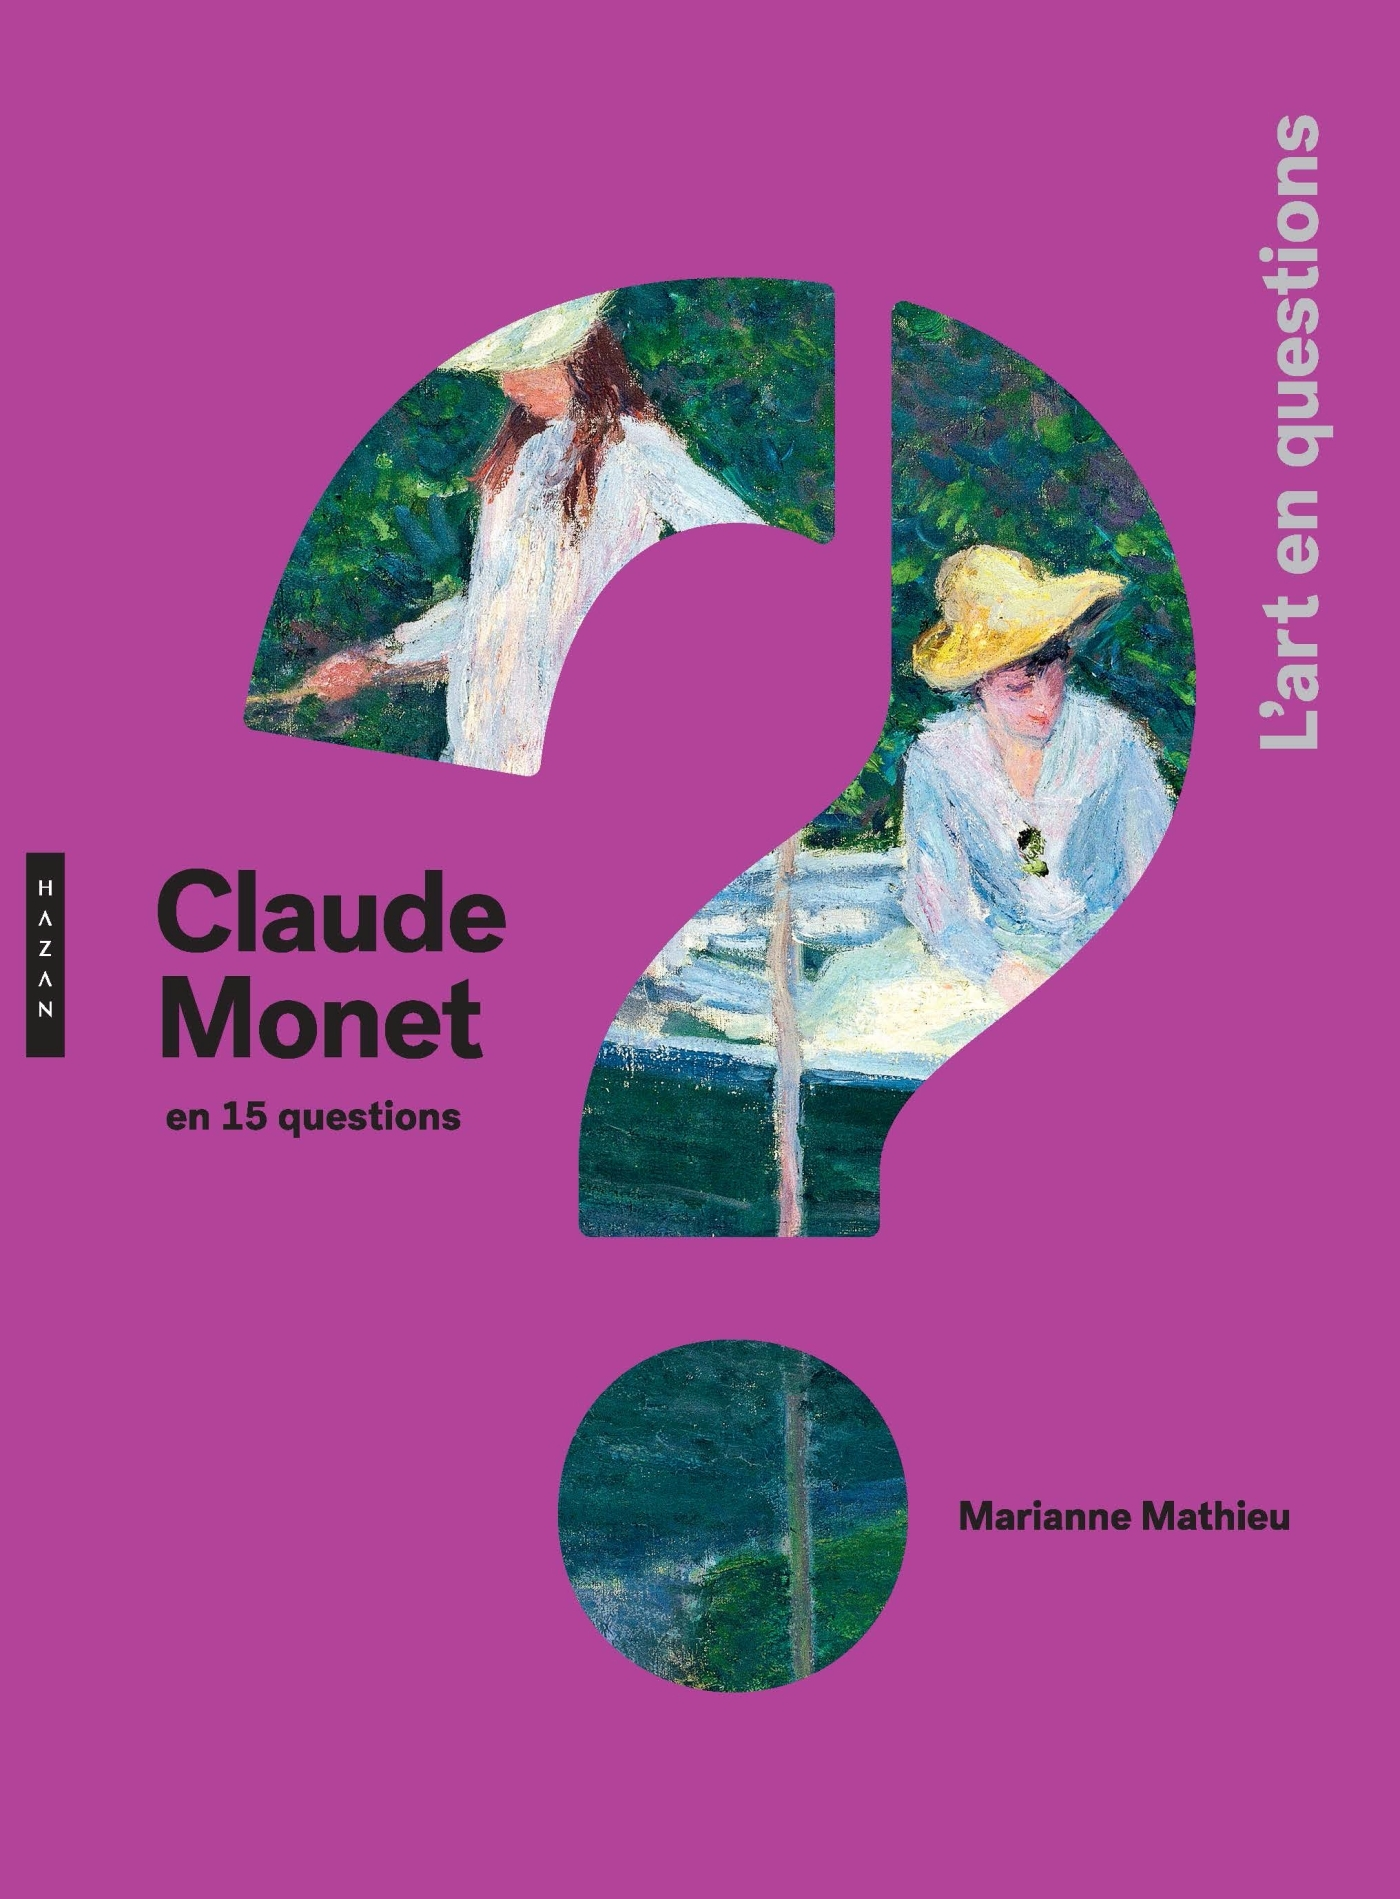 CLAUDE MONET EN 15 QUESTIONS